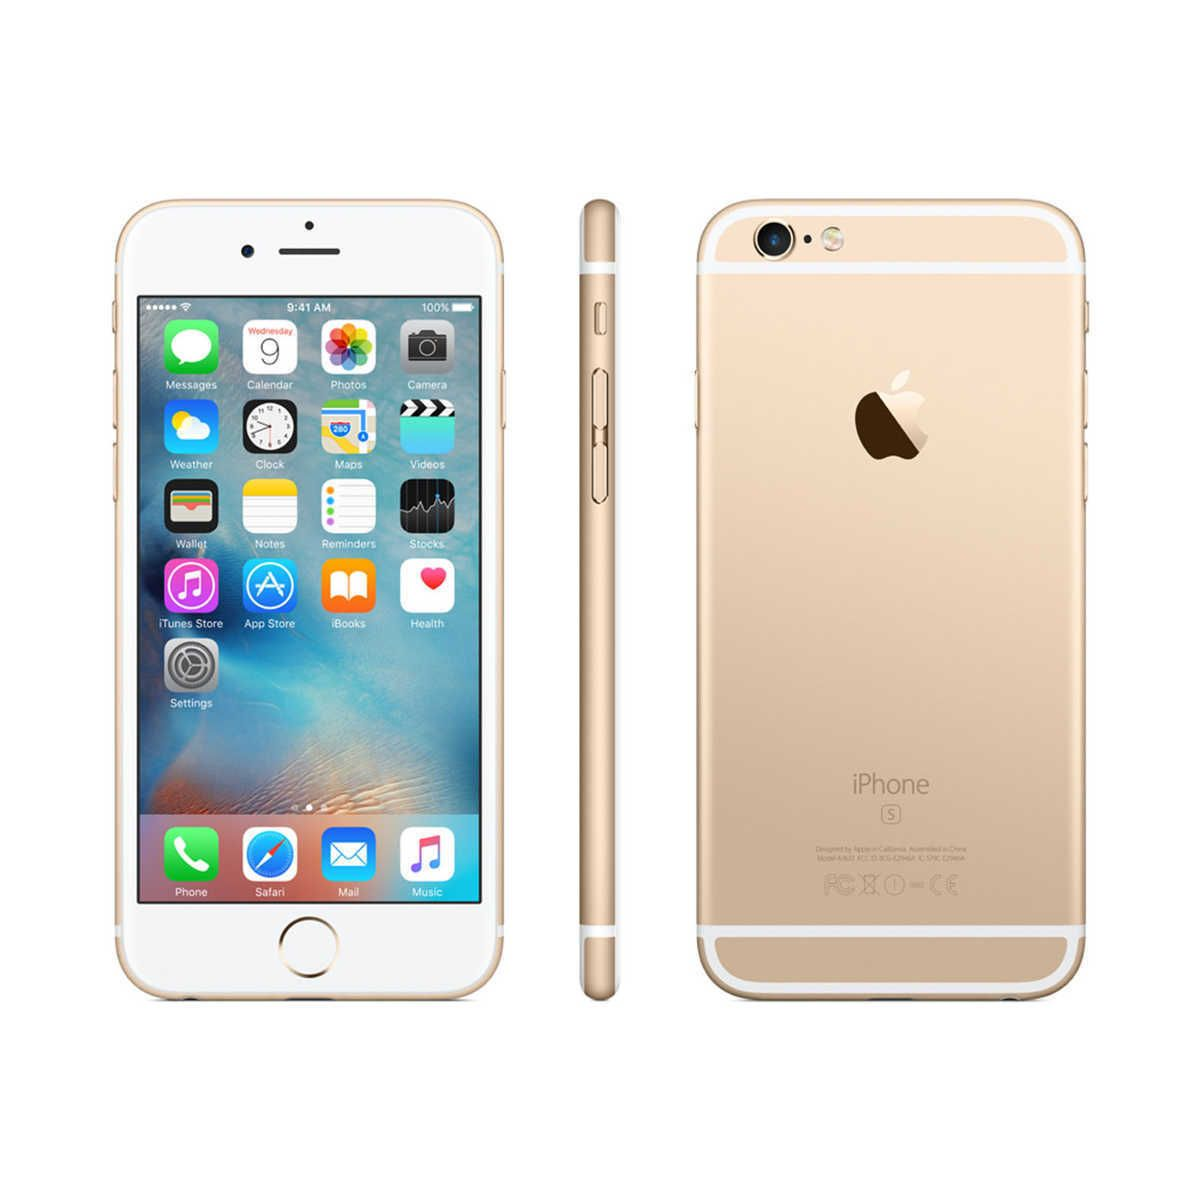 New Apple Iphone 6s 32gb Gold Factory Unlocked Galaxy Iphone Iphone 6s Rose Gold Apple Iphone 6s Plus Iphone